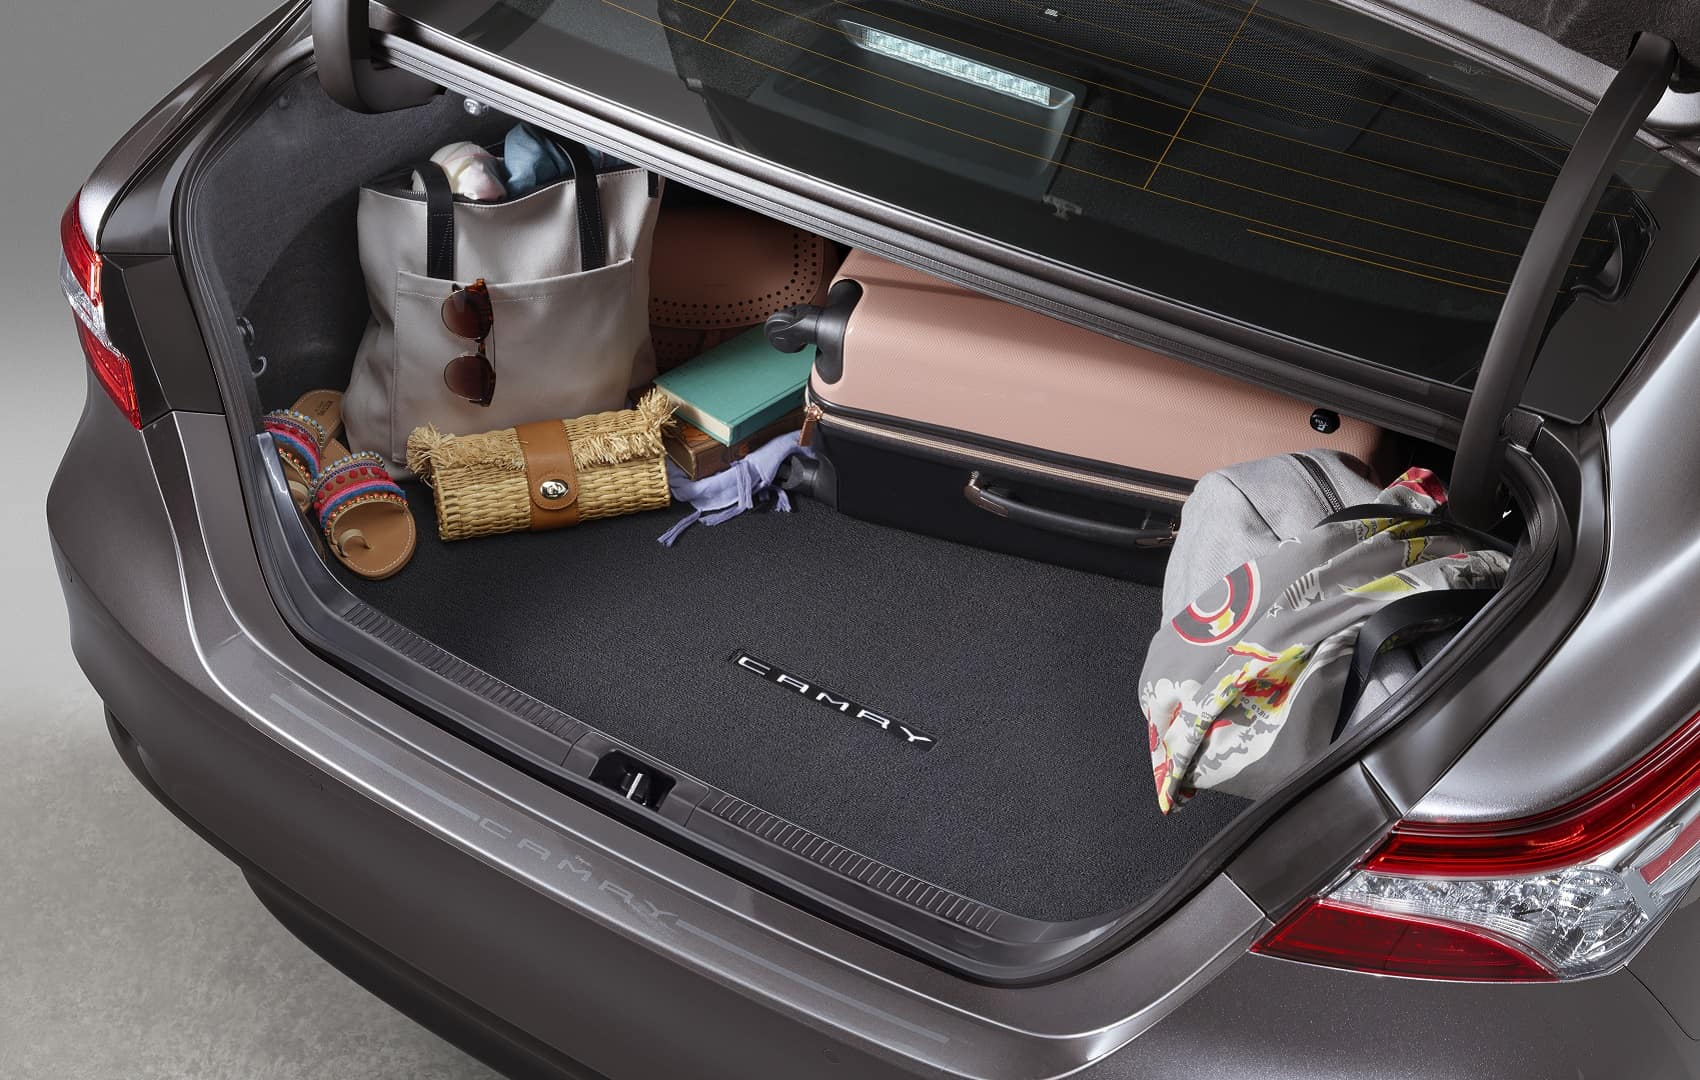 Toyota Camry Cargo Space